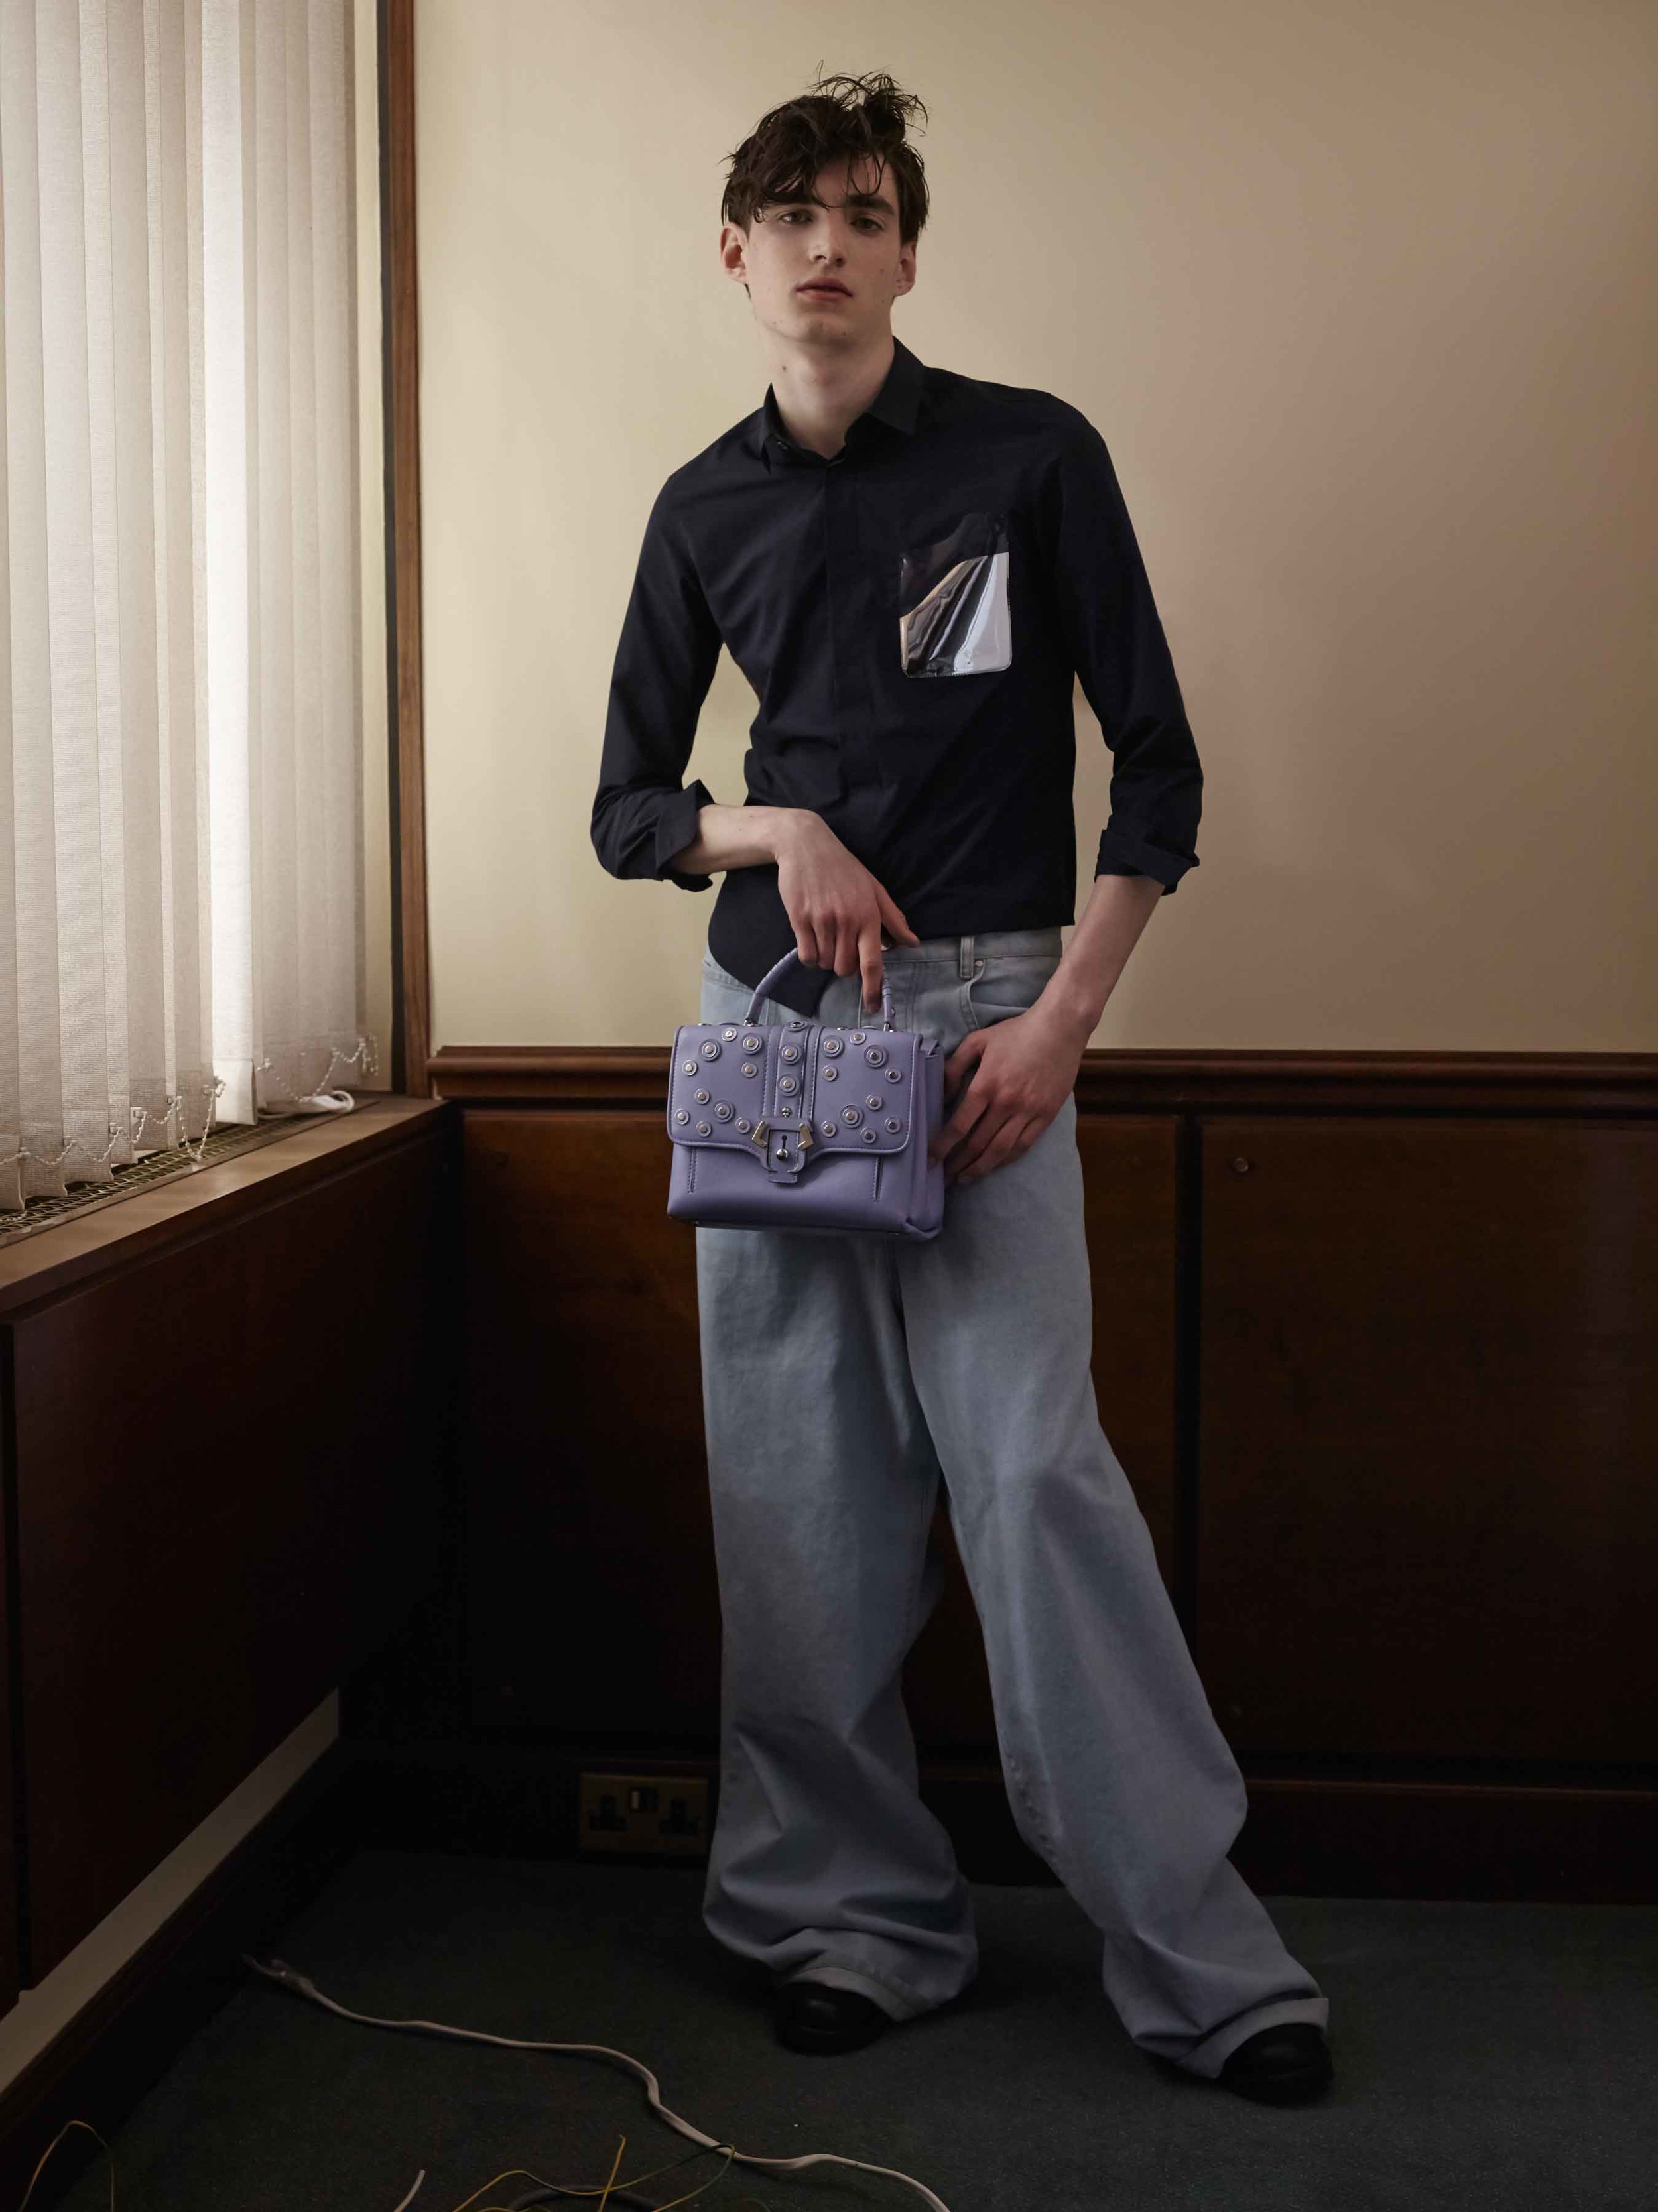 Shirt by Toga Jeans by Martine Rose Bag by Paula Cademartori Shoes by Rory Parnell Mooney